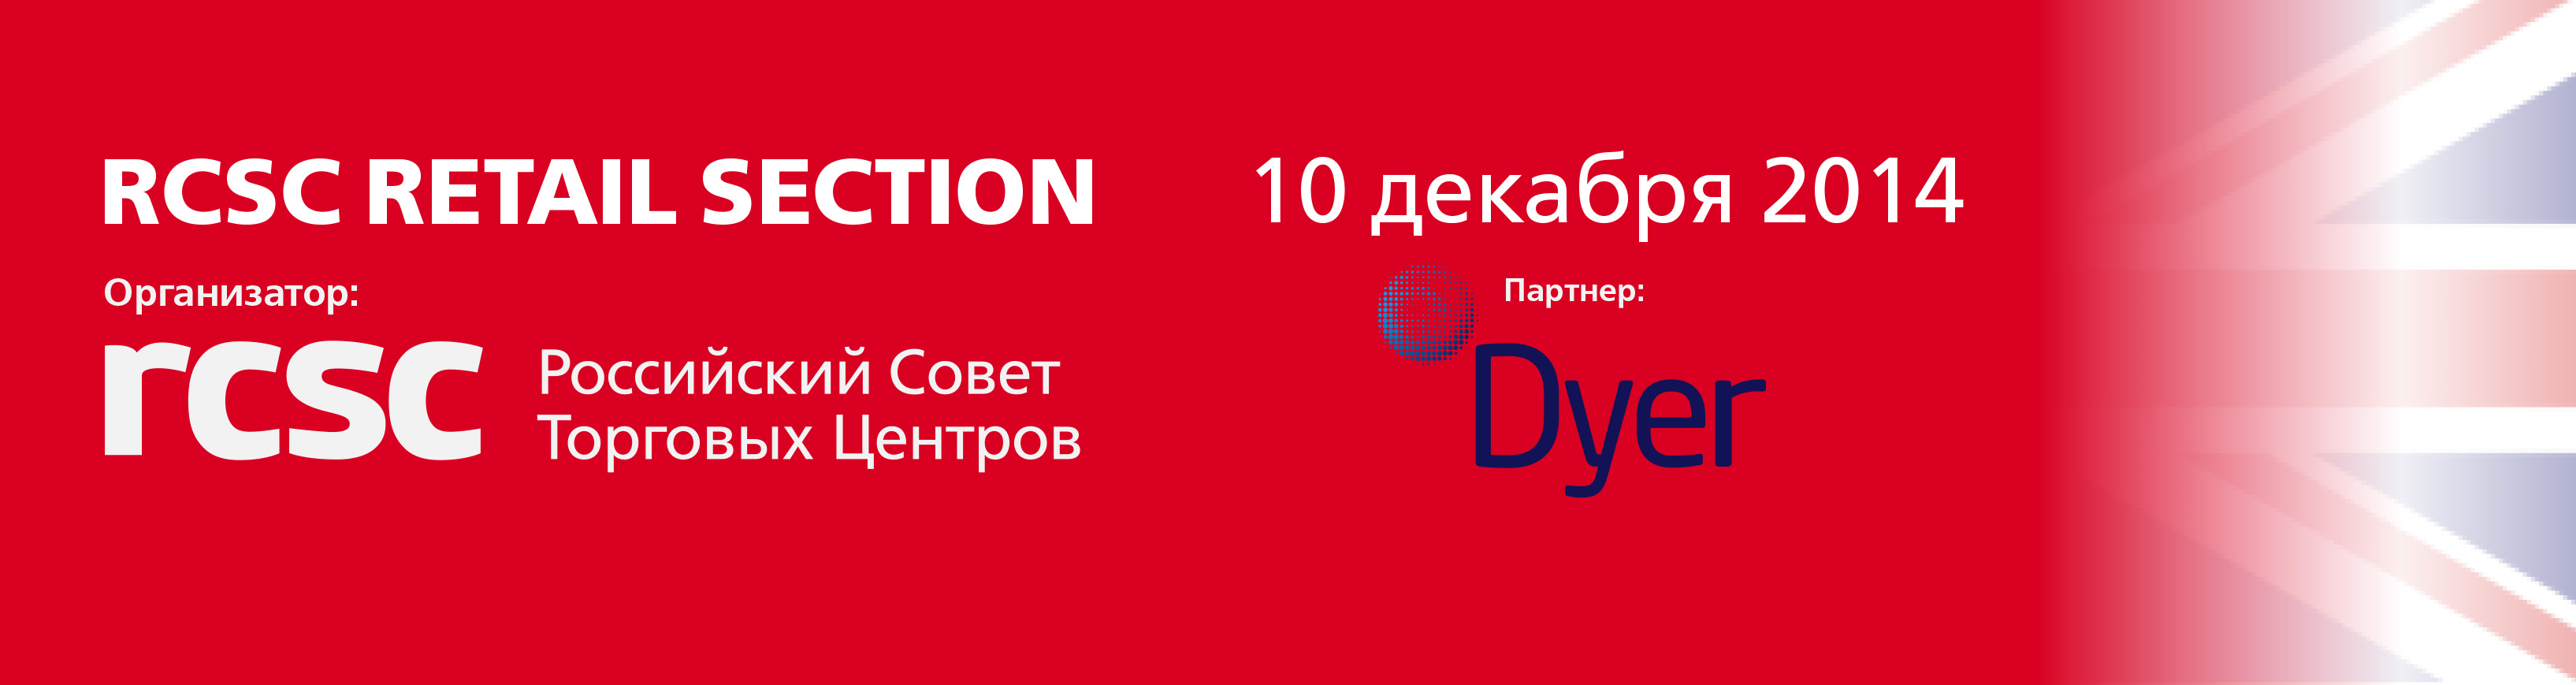 On December 10, the Russian Council of Shopping Centers and the English architecture bureau Dyer will conduct RCSC RETAIL SECTION - a project dedicated to the strategy of anchor tenants and the assessment of the liquidity of the retail business.